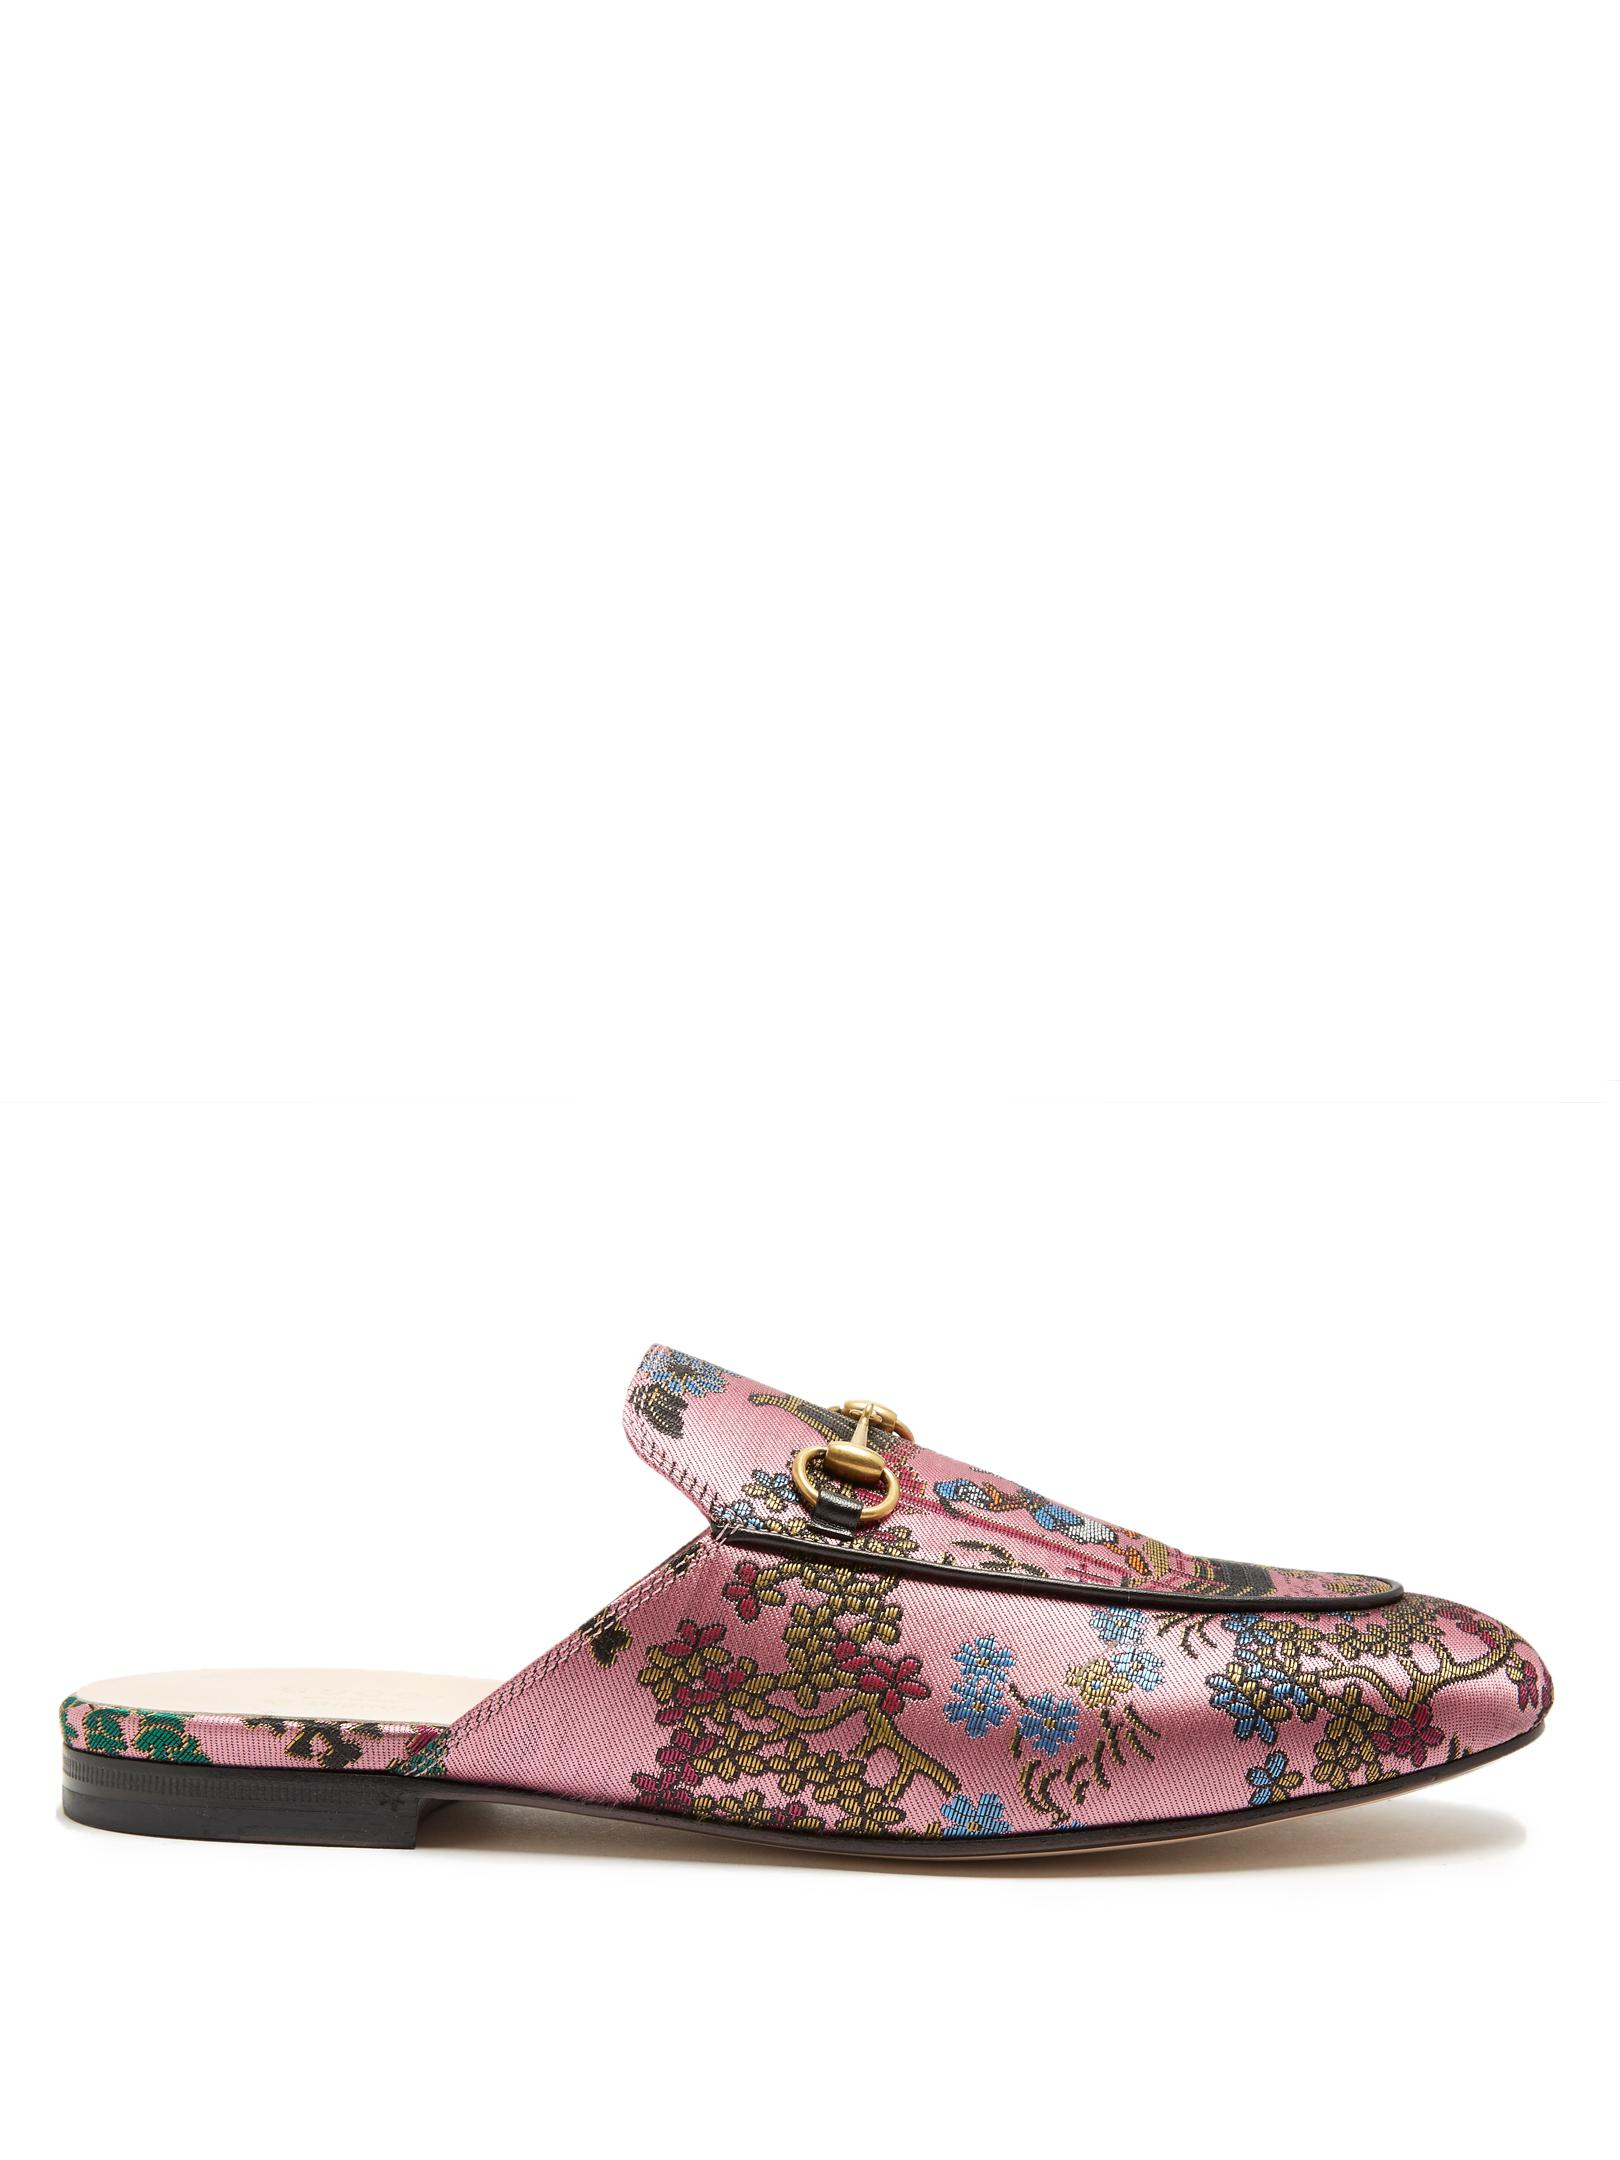 Lyst - Gucci Princetown Jacquard Backless Loafers in Pink